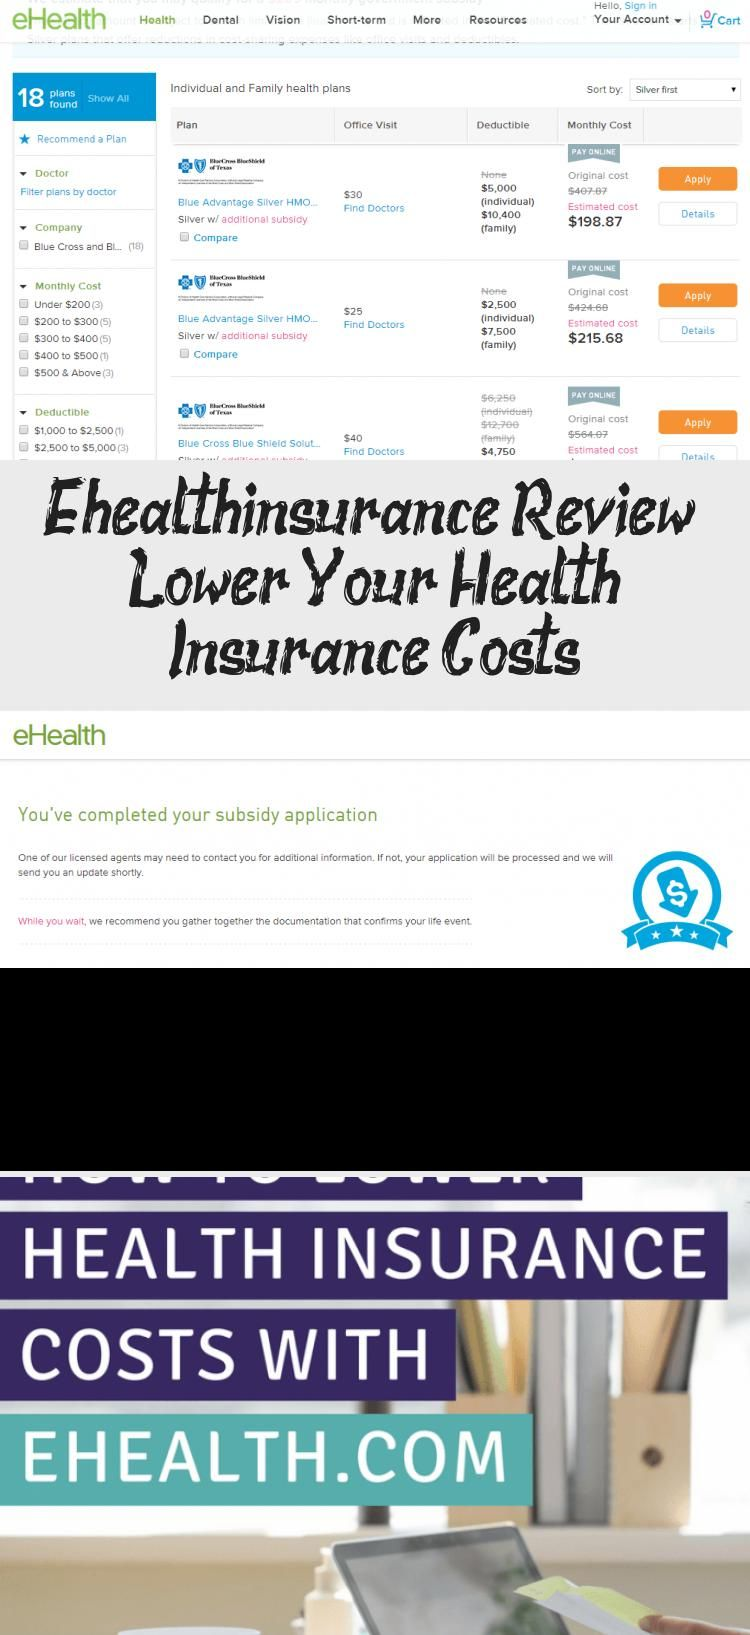 Ehealthinsurance Review Lower Your Health Insurance Costs